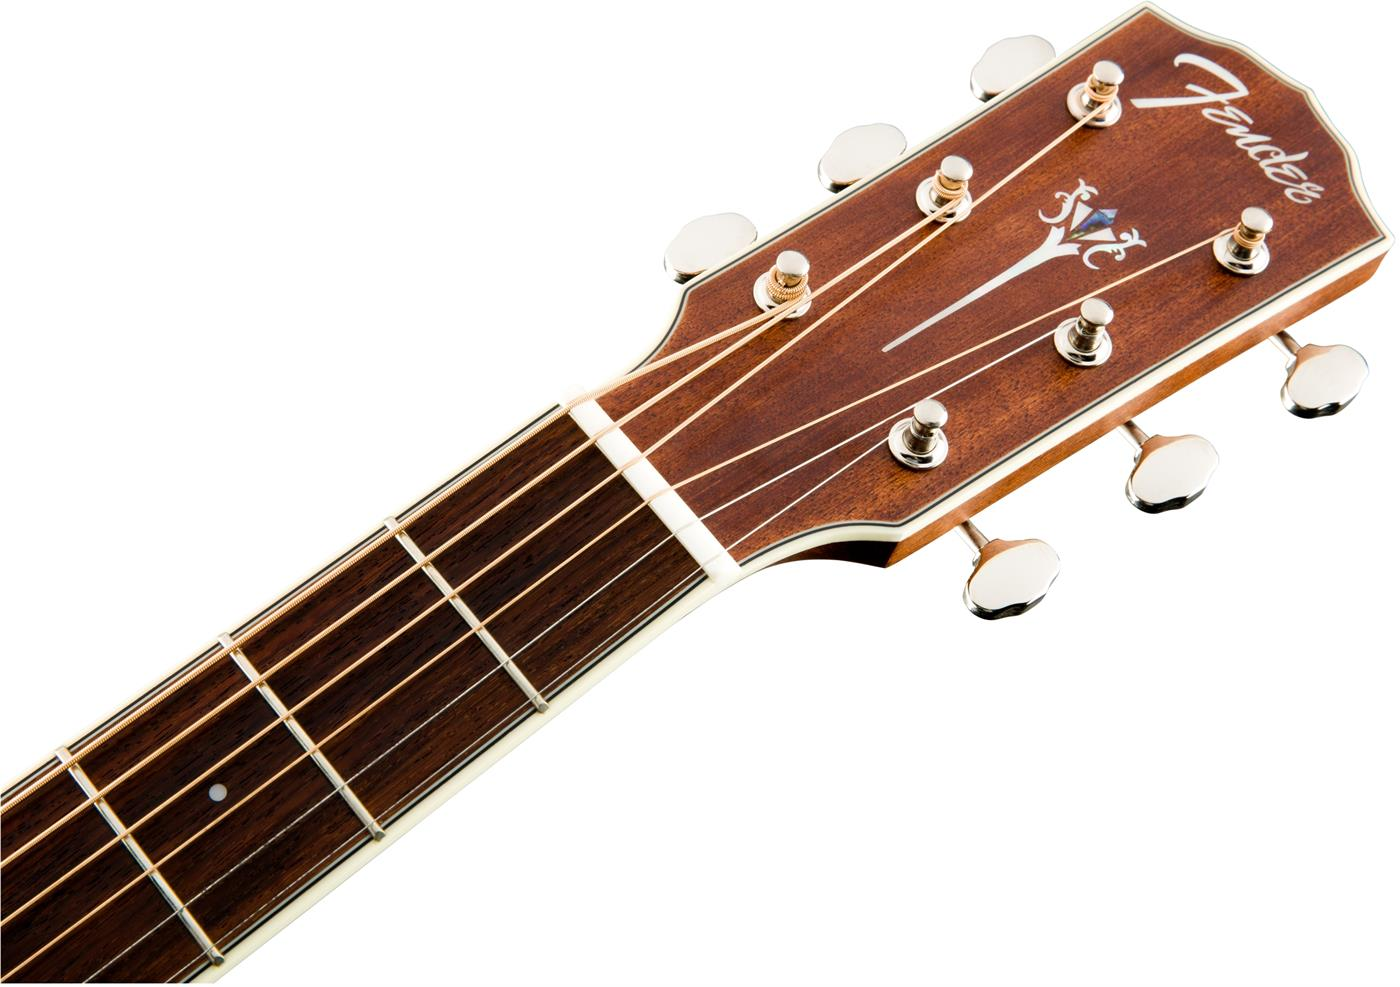 0970331322 Fender 097-0331-322 Fender Acoustic Guitars PM-3 Triple-0 Al l-Mahogany with Case, Nat